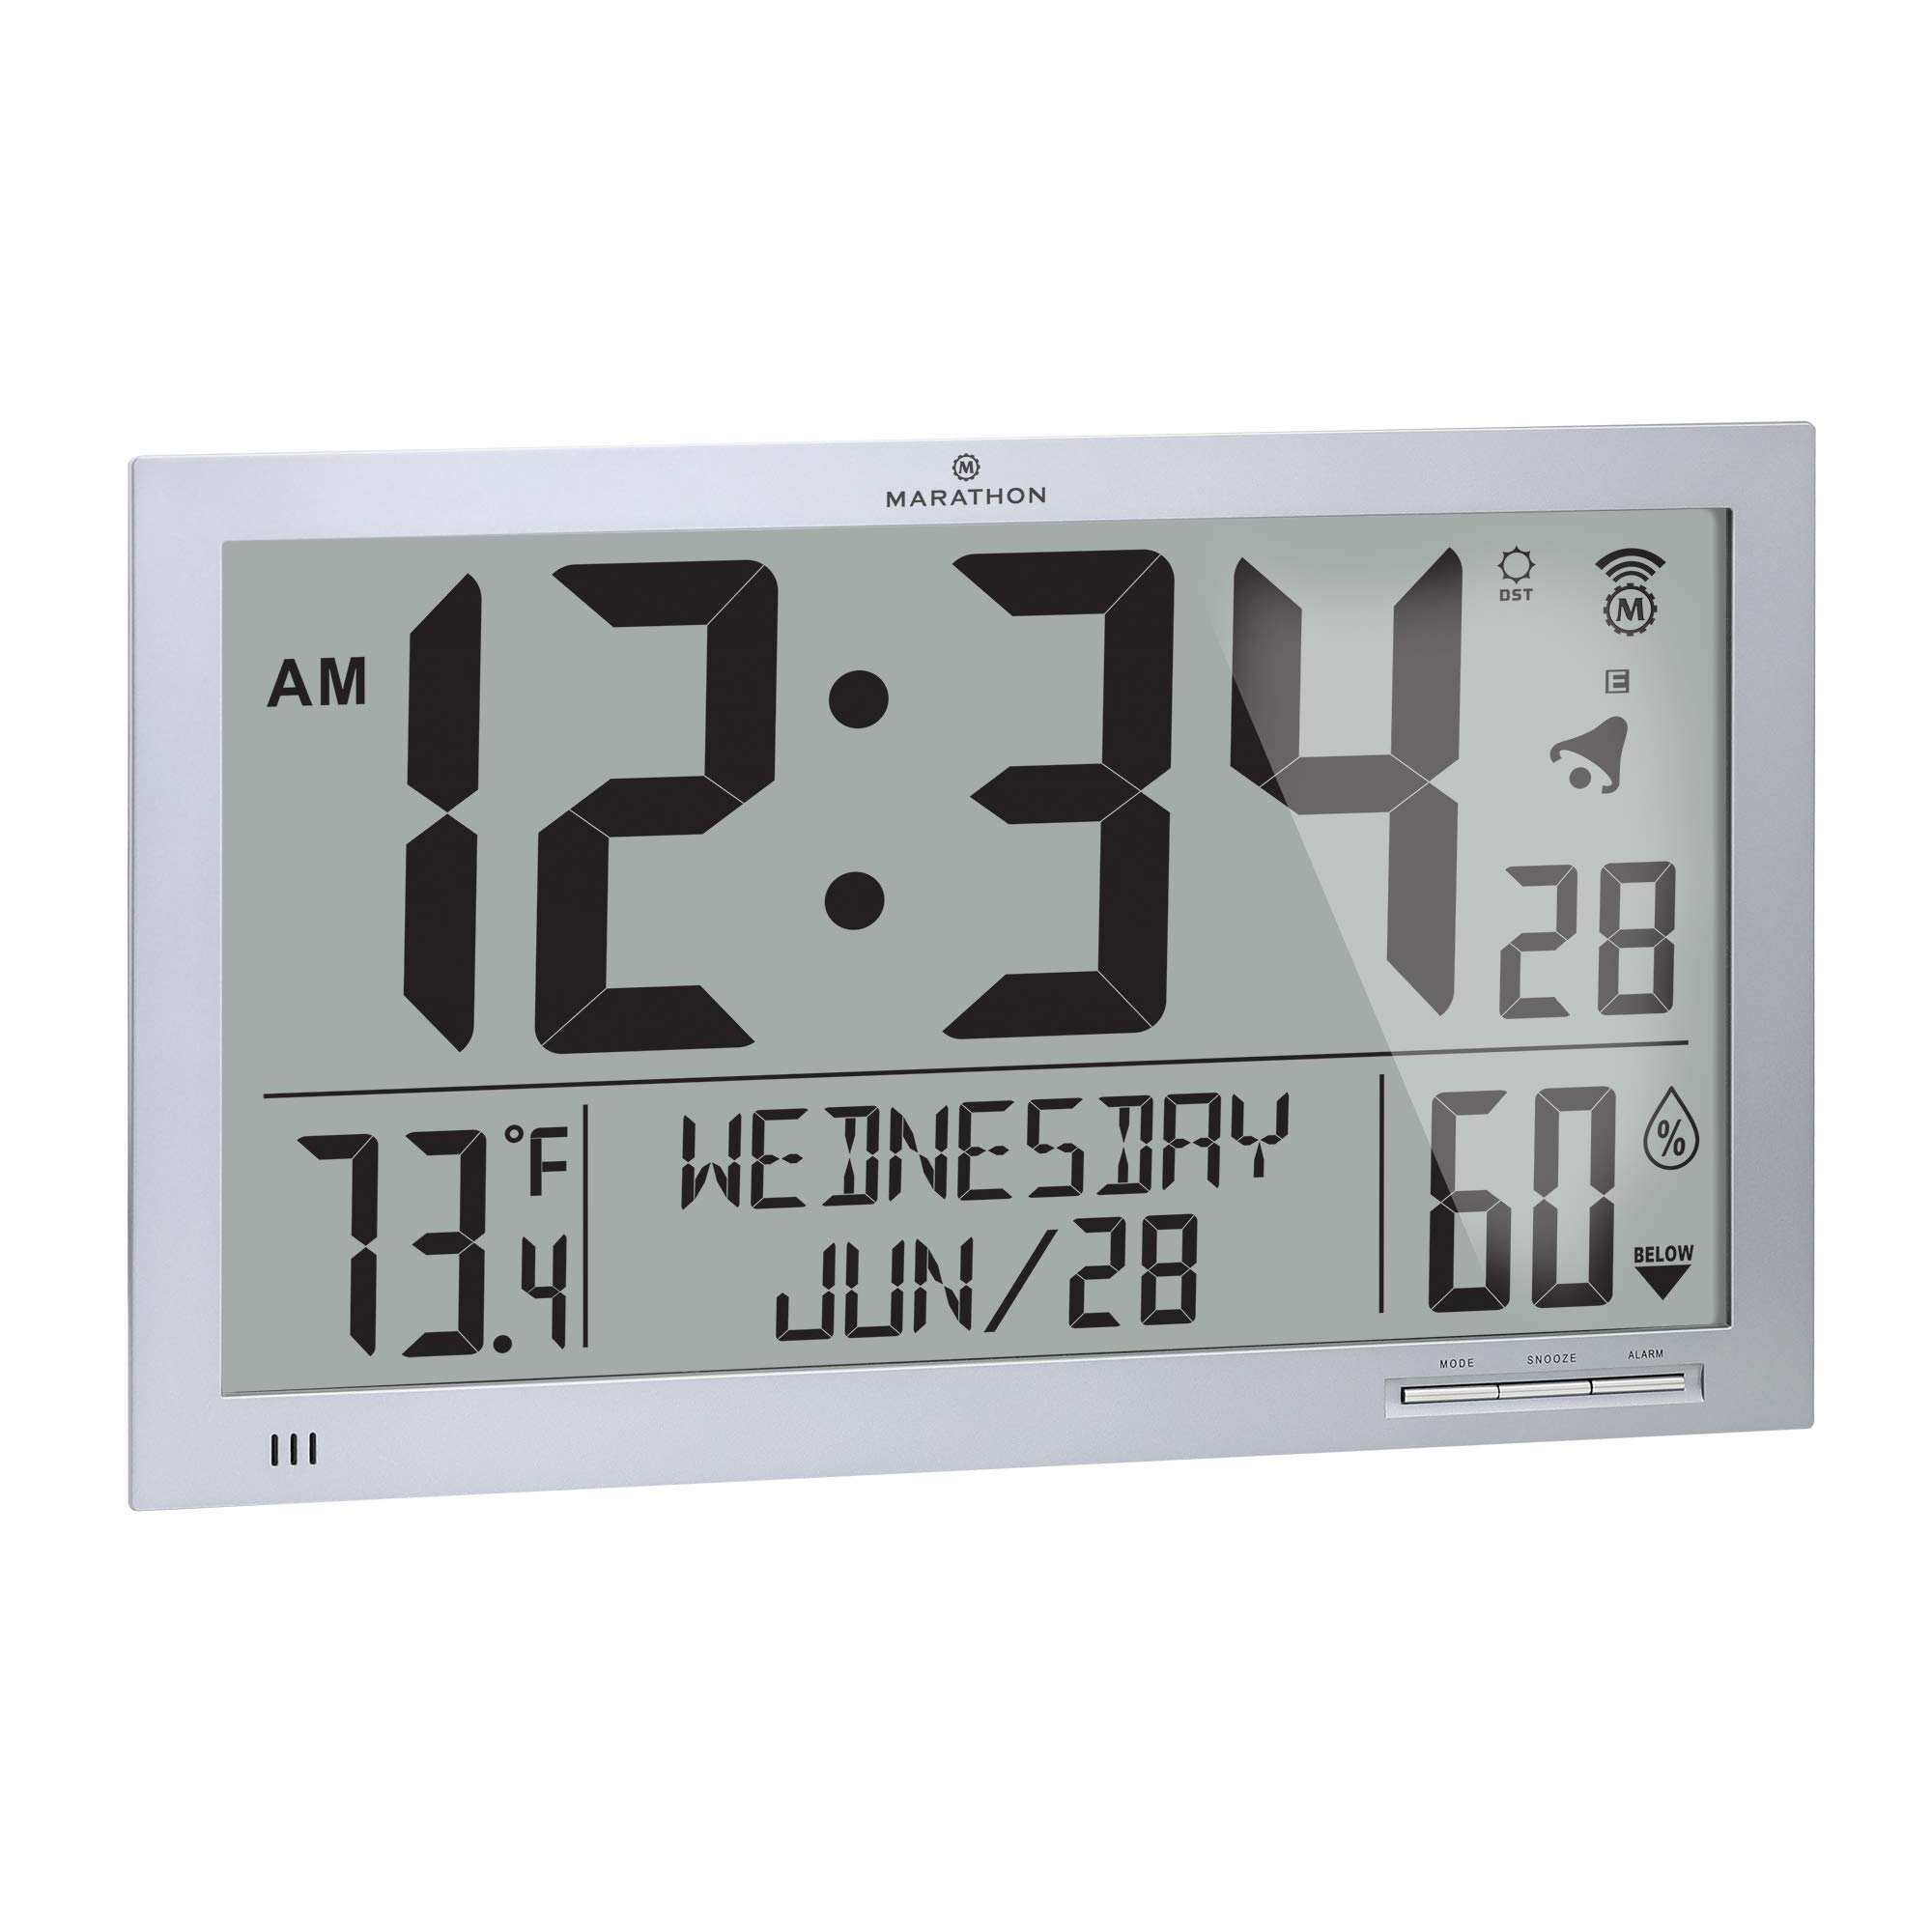 Marathon Slim Atomic Full Calendar Wall Clock with Indoor/Outdoor Temperature. Extra Long 4.5 Inch Digits. Comes with…